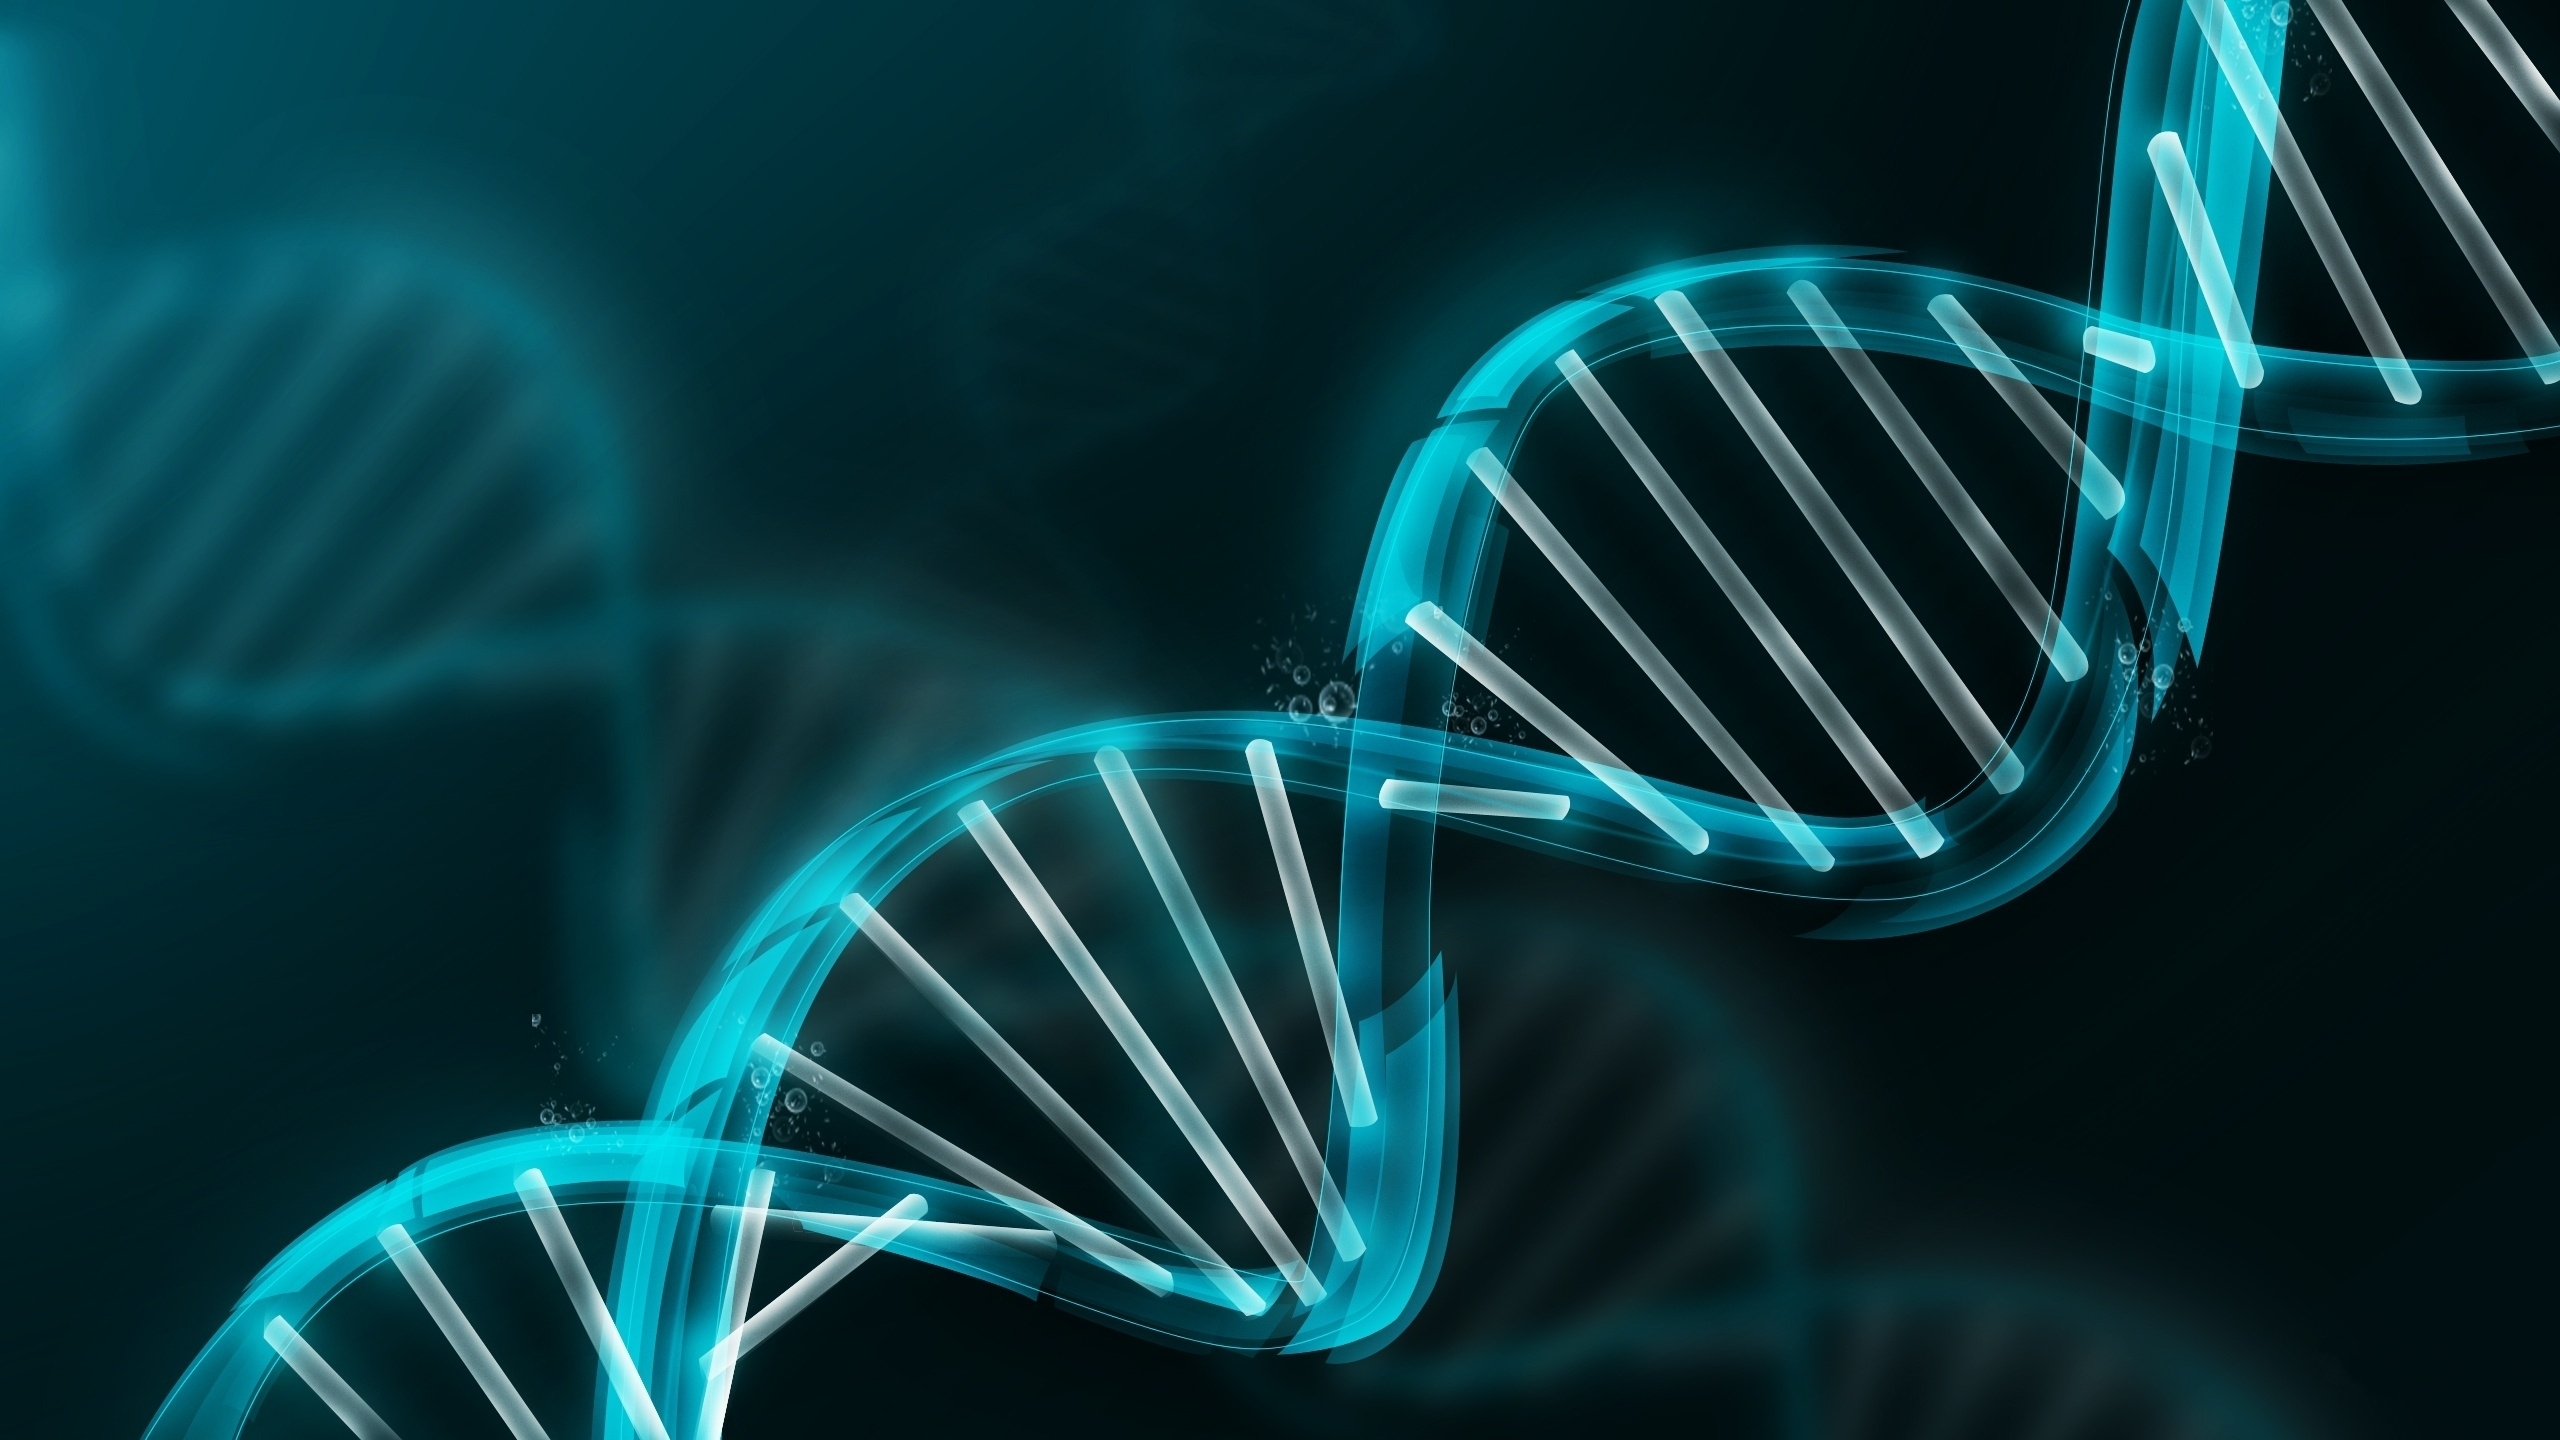 dna wallpapers, top hd dna wallpapers, #ng high resolution